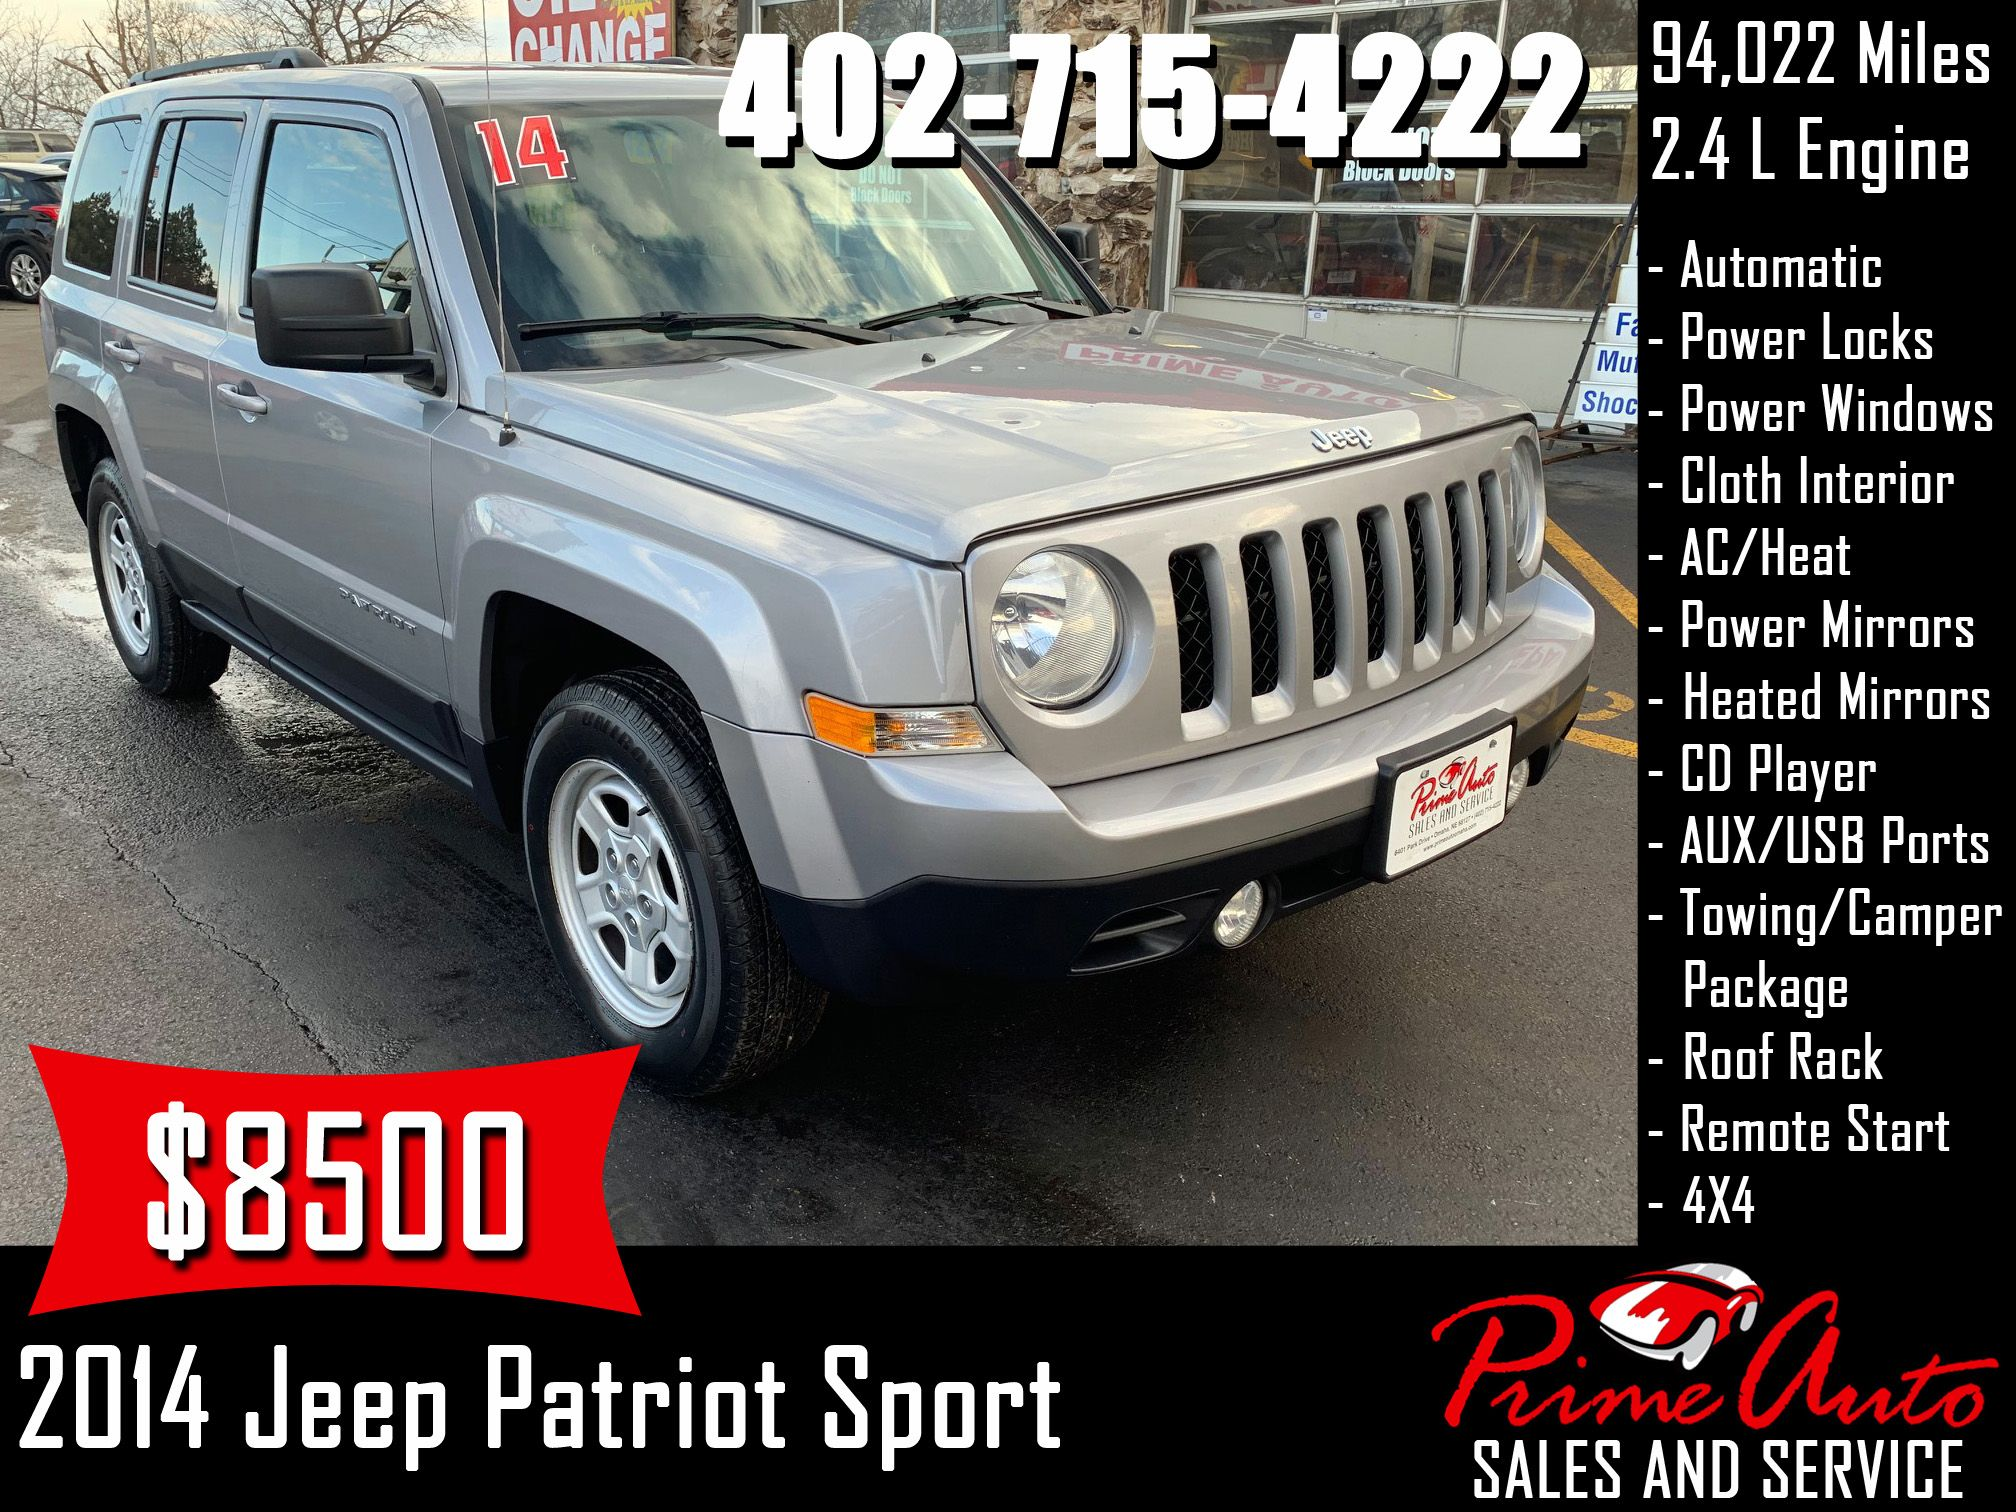 2014 Jeep Patriot Sport Call Us Today 402 715 4222 Jeep